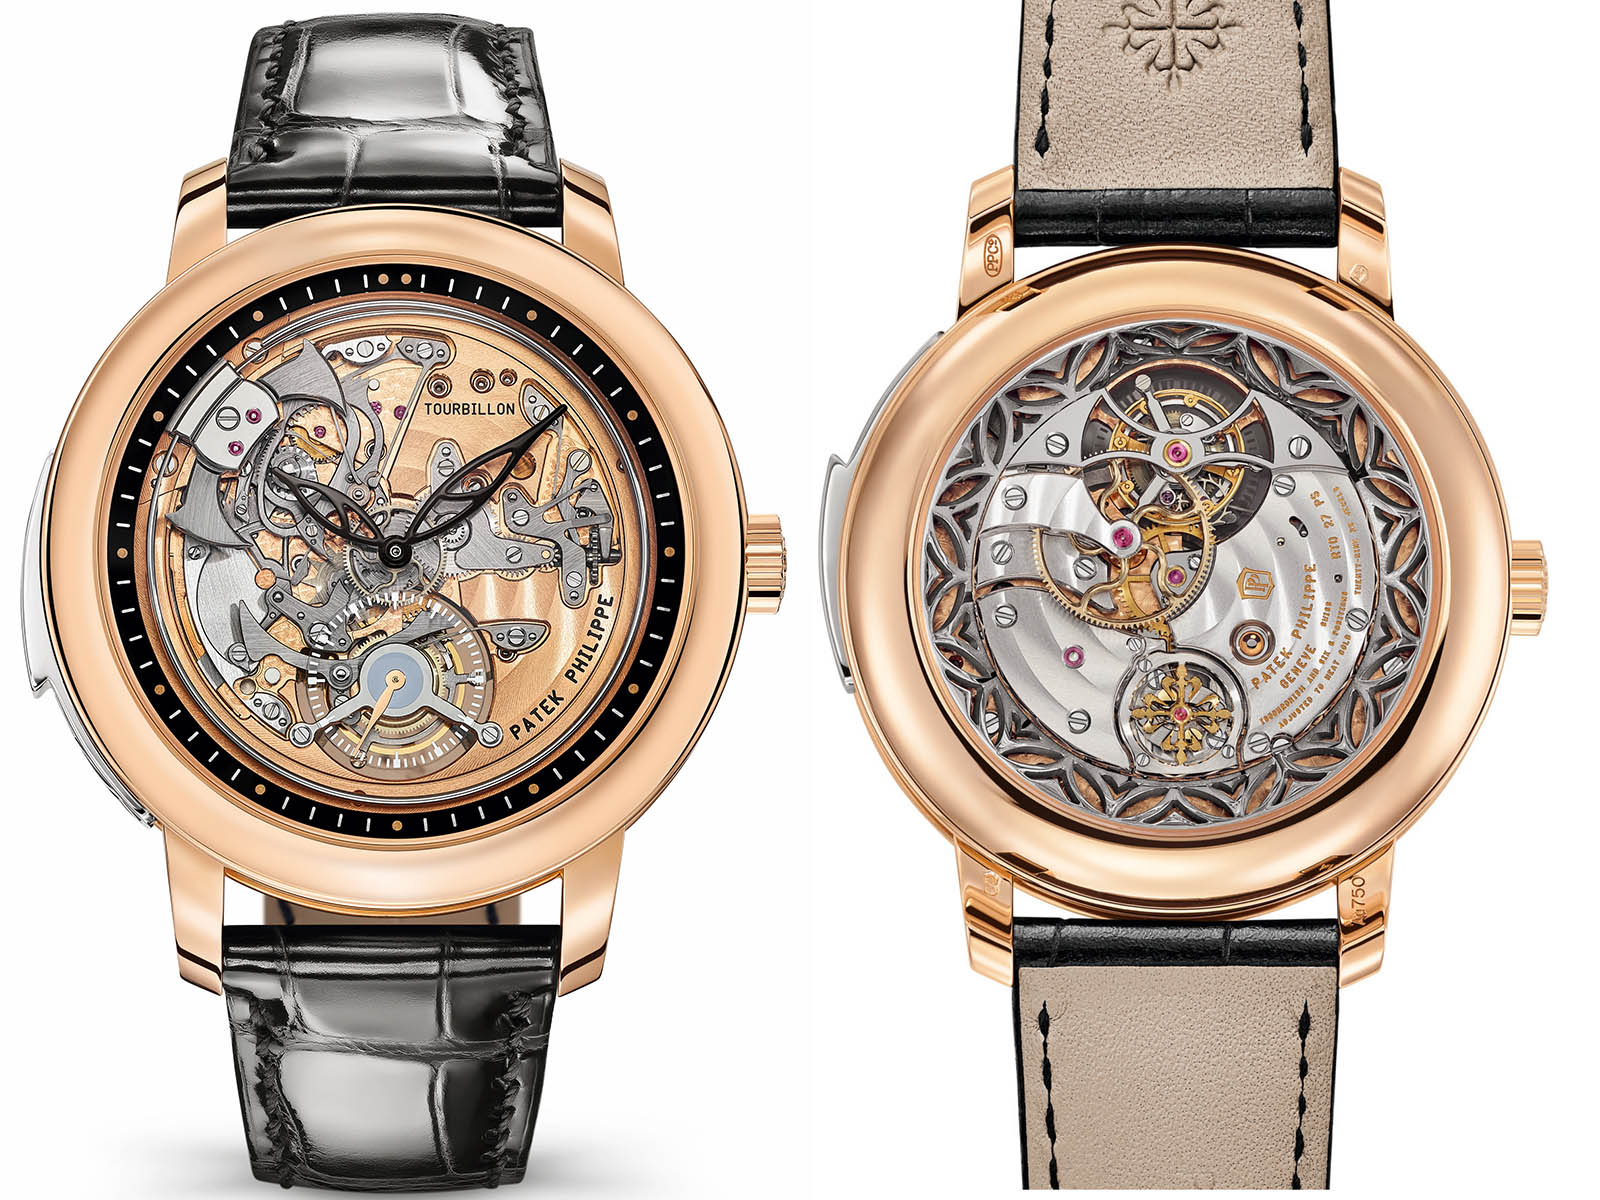 5303r-001-patek-philippe-5303r-minute-repeater-tourbillon-3.jpg